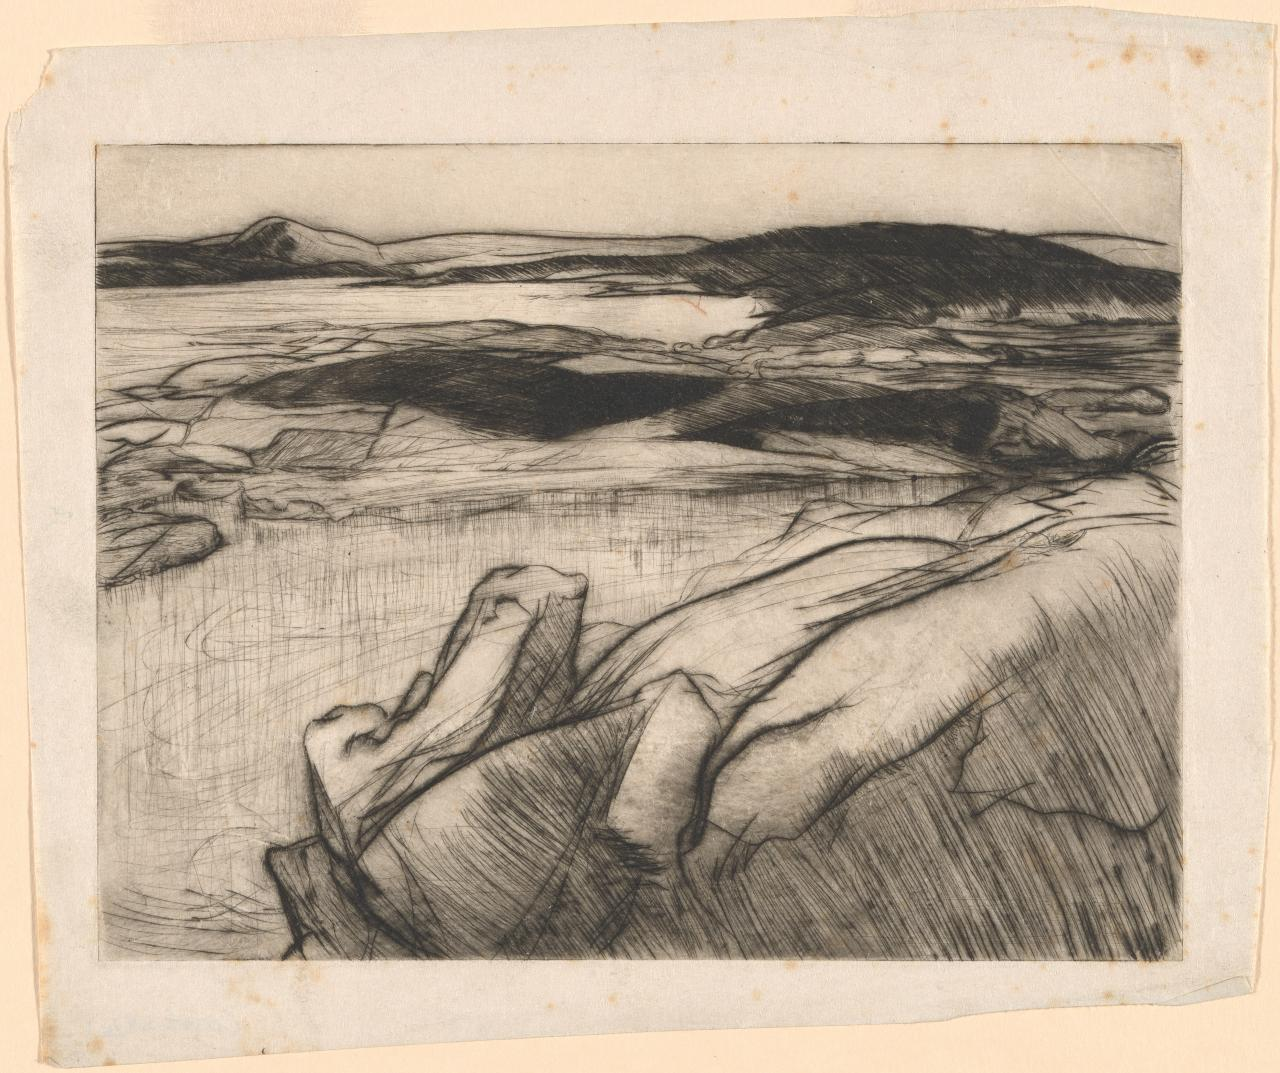 (Untitled) (Coastal landscape with rocks in foreground)